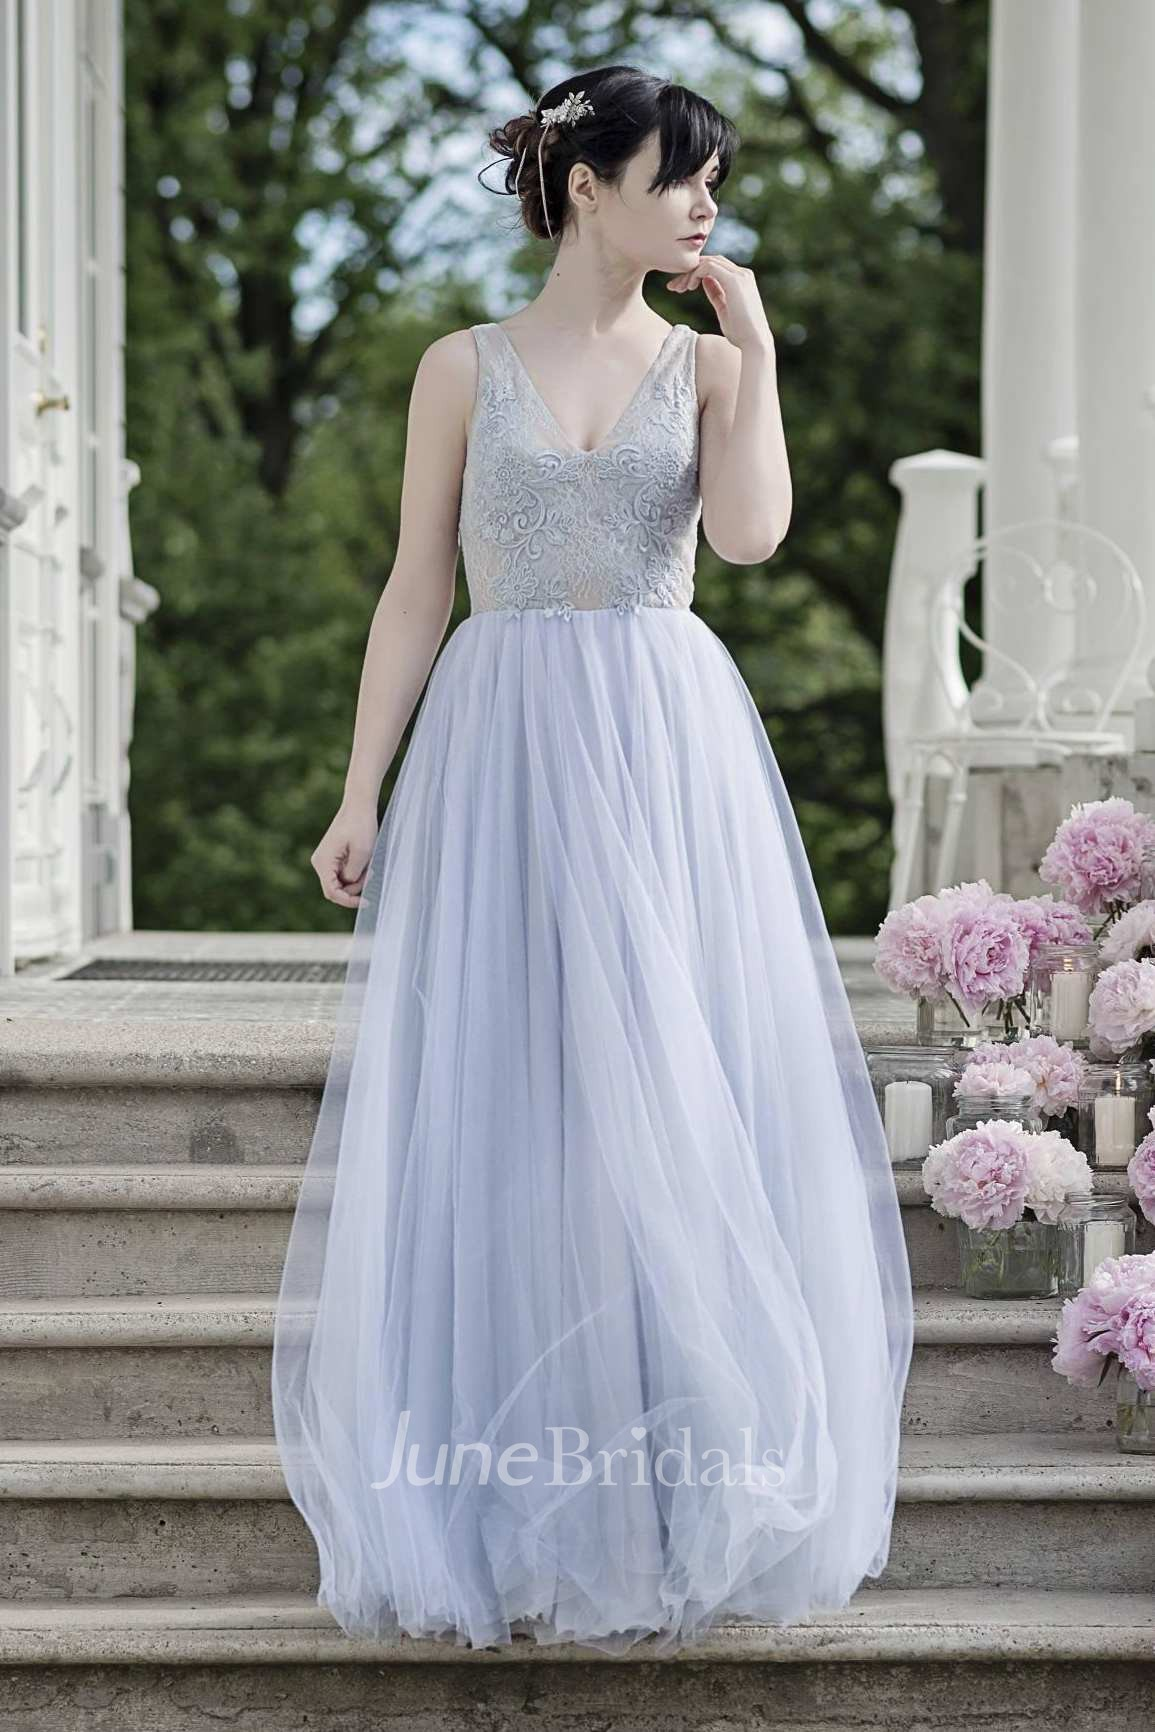 Chiffon tulle satin lace embroidered wedding dress june for Chiffon tulle wedding dress